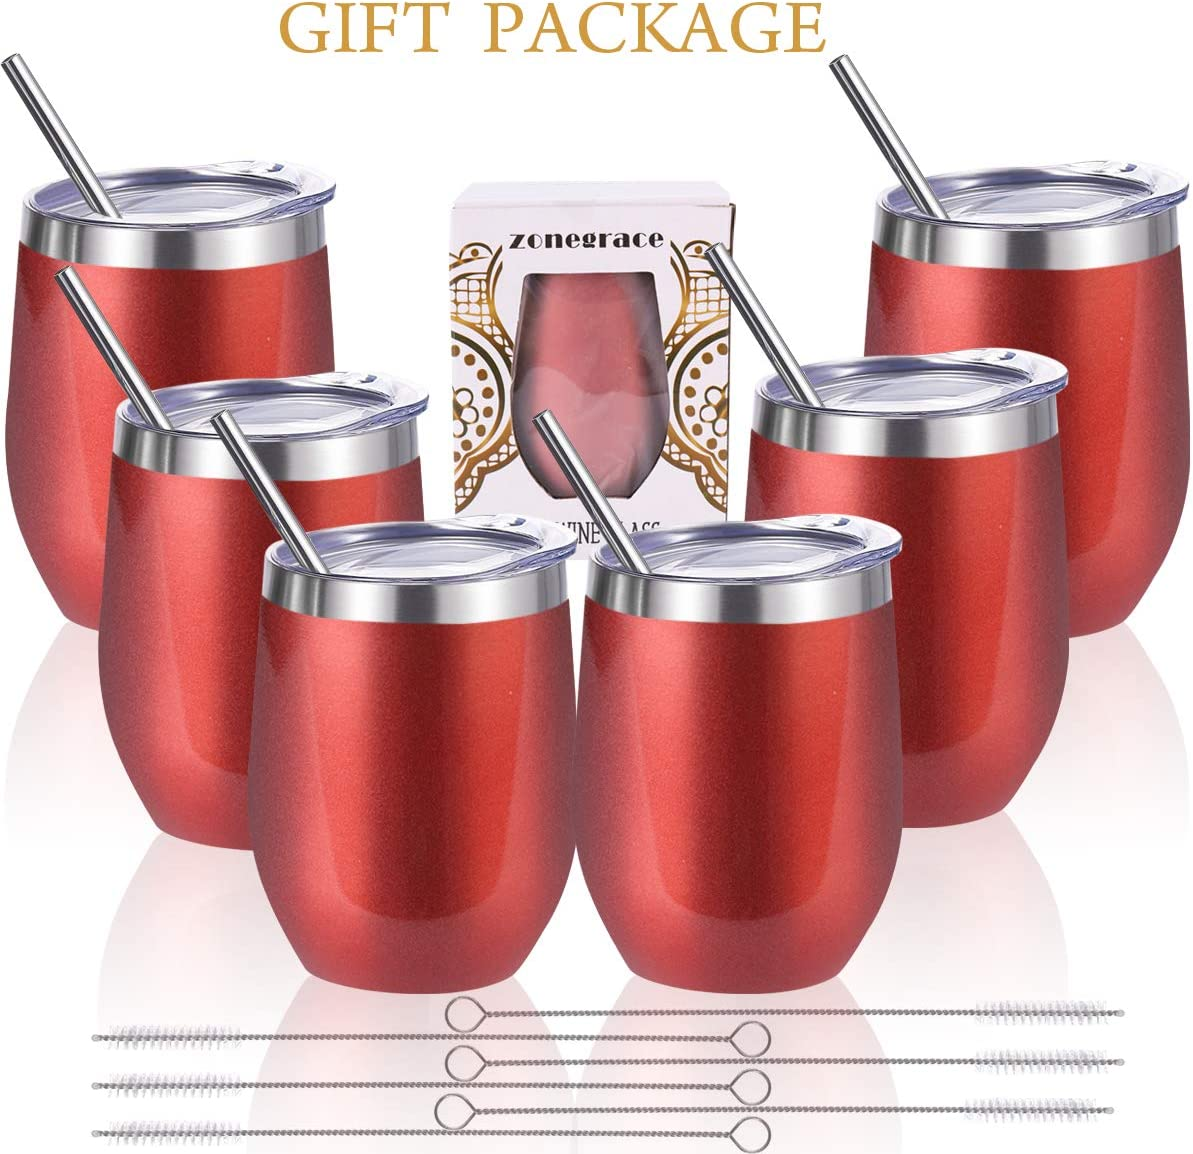 Zonegrace 6 pack Rose Gold 12 oz Stainless Steel Stemless Wine Glass Tumbler Double Wall Vacuum Insulated Bulk Wine Tumbler with Lids Set of 6,Gift Pack for Coffee, Wine, Cocktails, Including 6 Straws